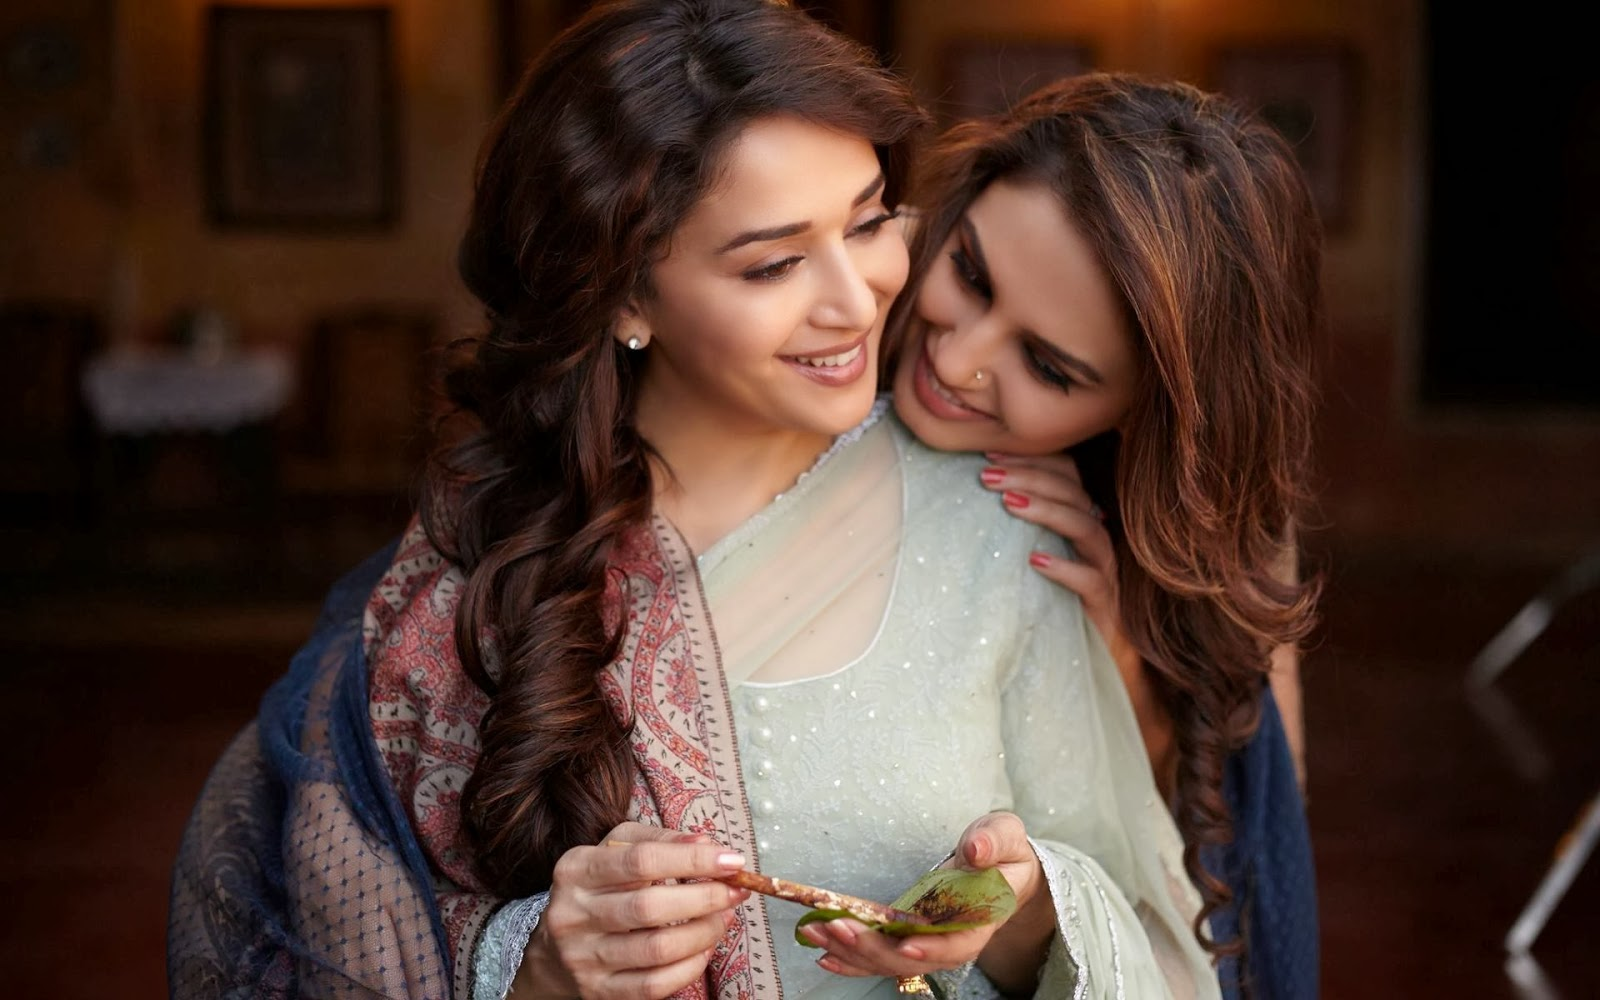 Madhuri Dixit, Nene, Dedh Ishqiya, Release, 2014, Movie, Film, Huma Qureshi, Arshad Warsi, Naseeruddin Shah, Role, Trailer, Bollywood, Showbiz, Entertainment,